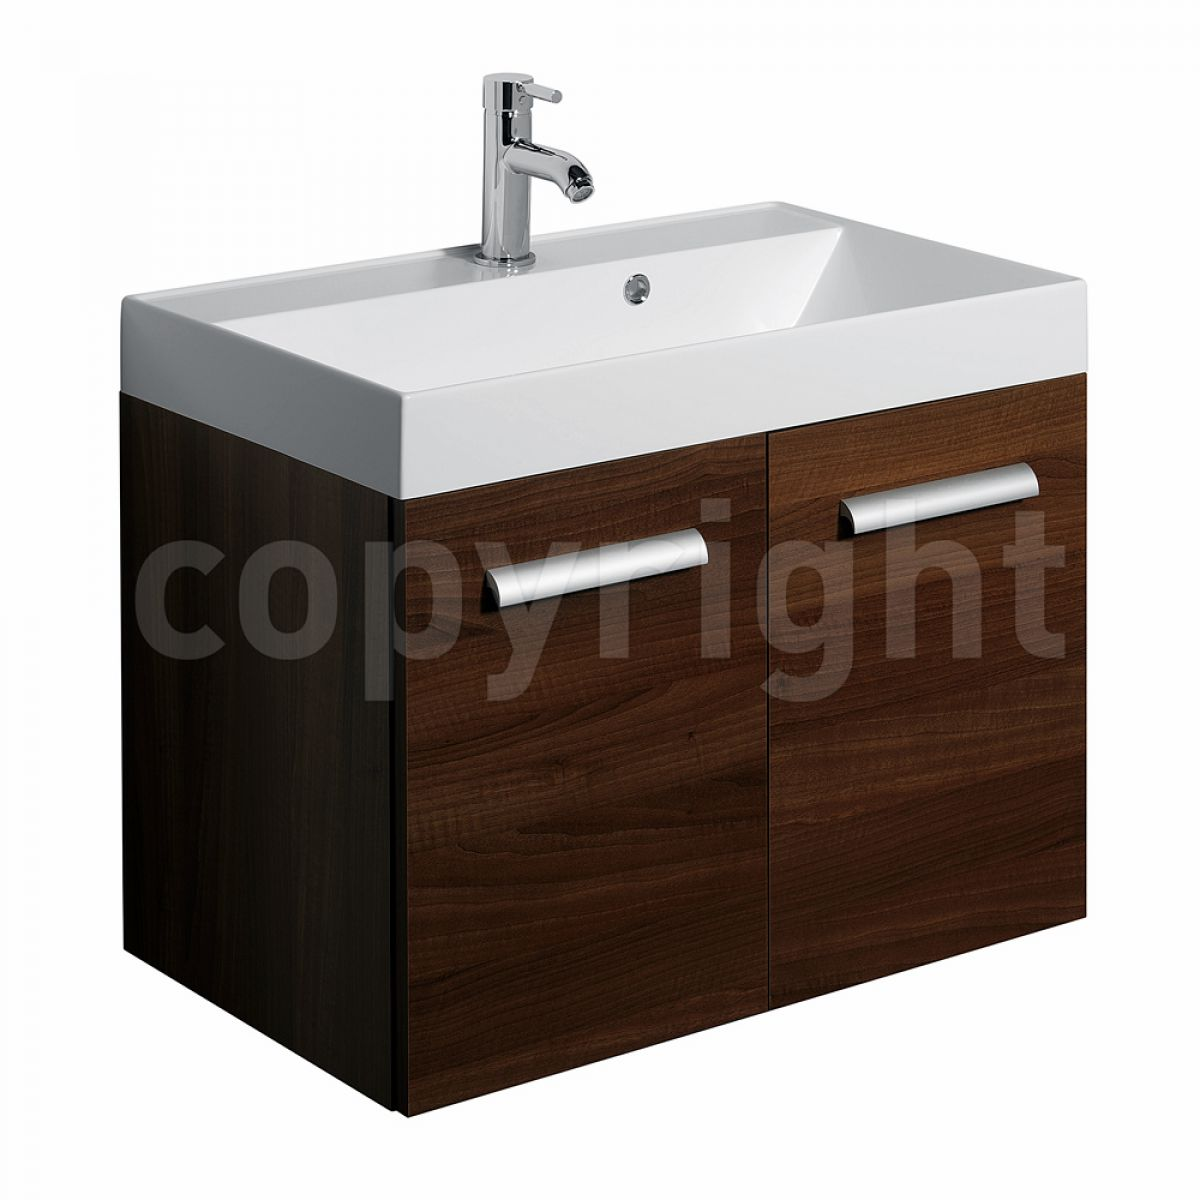 de7000fwt de0003srw home bathroom furniture wall hung furniture